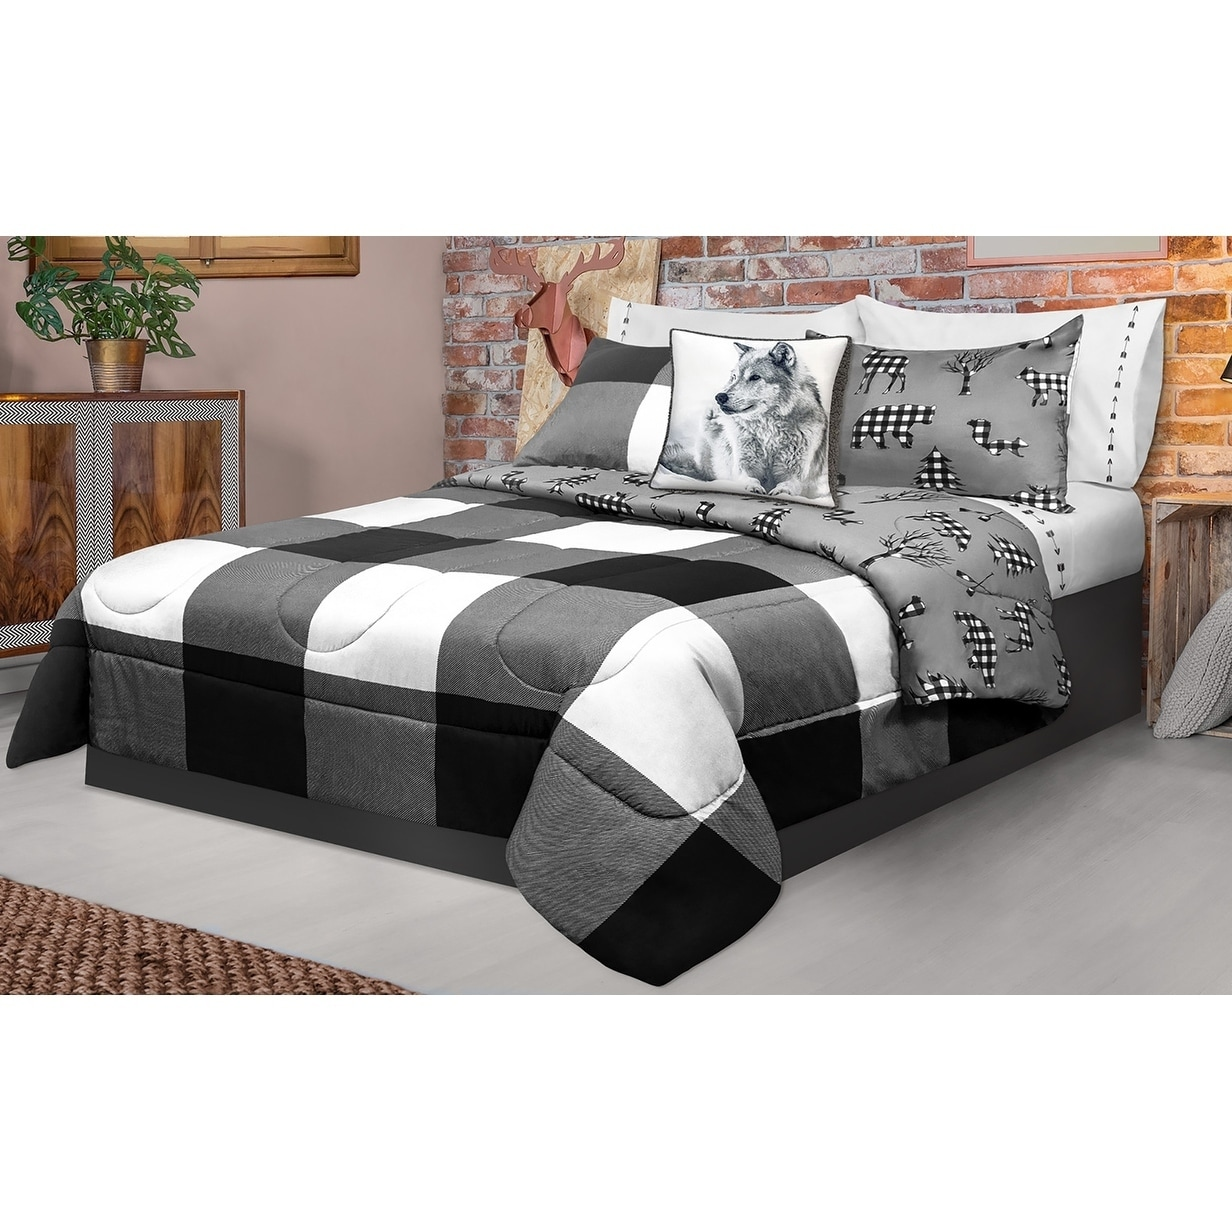 Collection Buffalo 2 Piece Comforter Set Twin Safdie Co